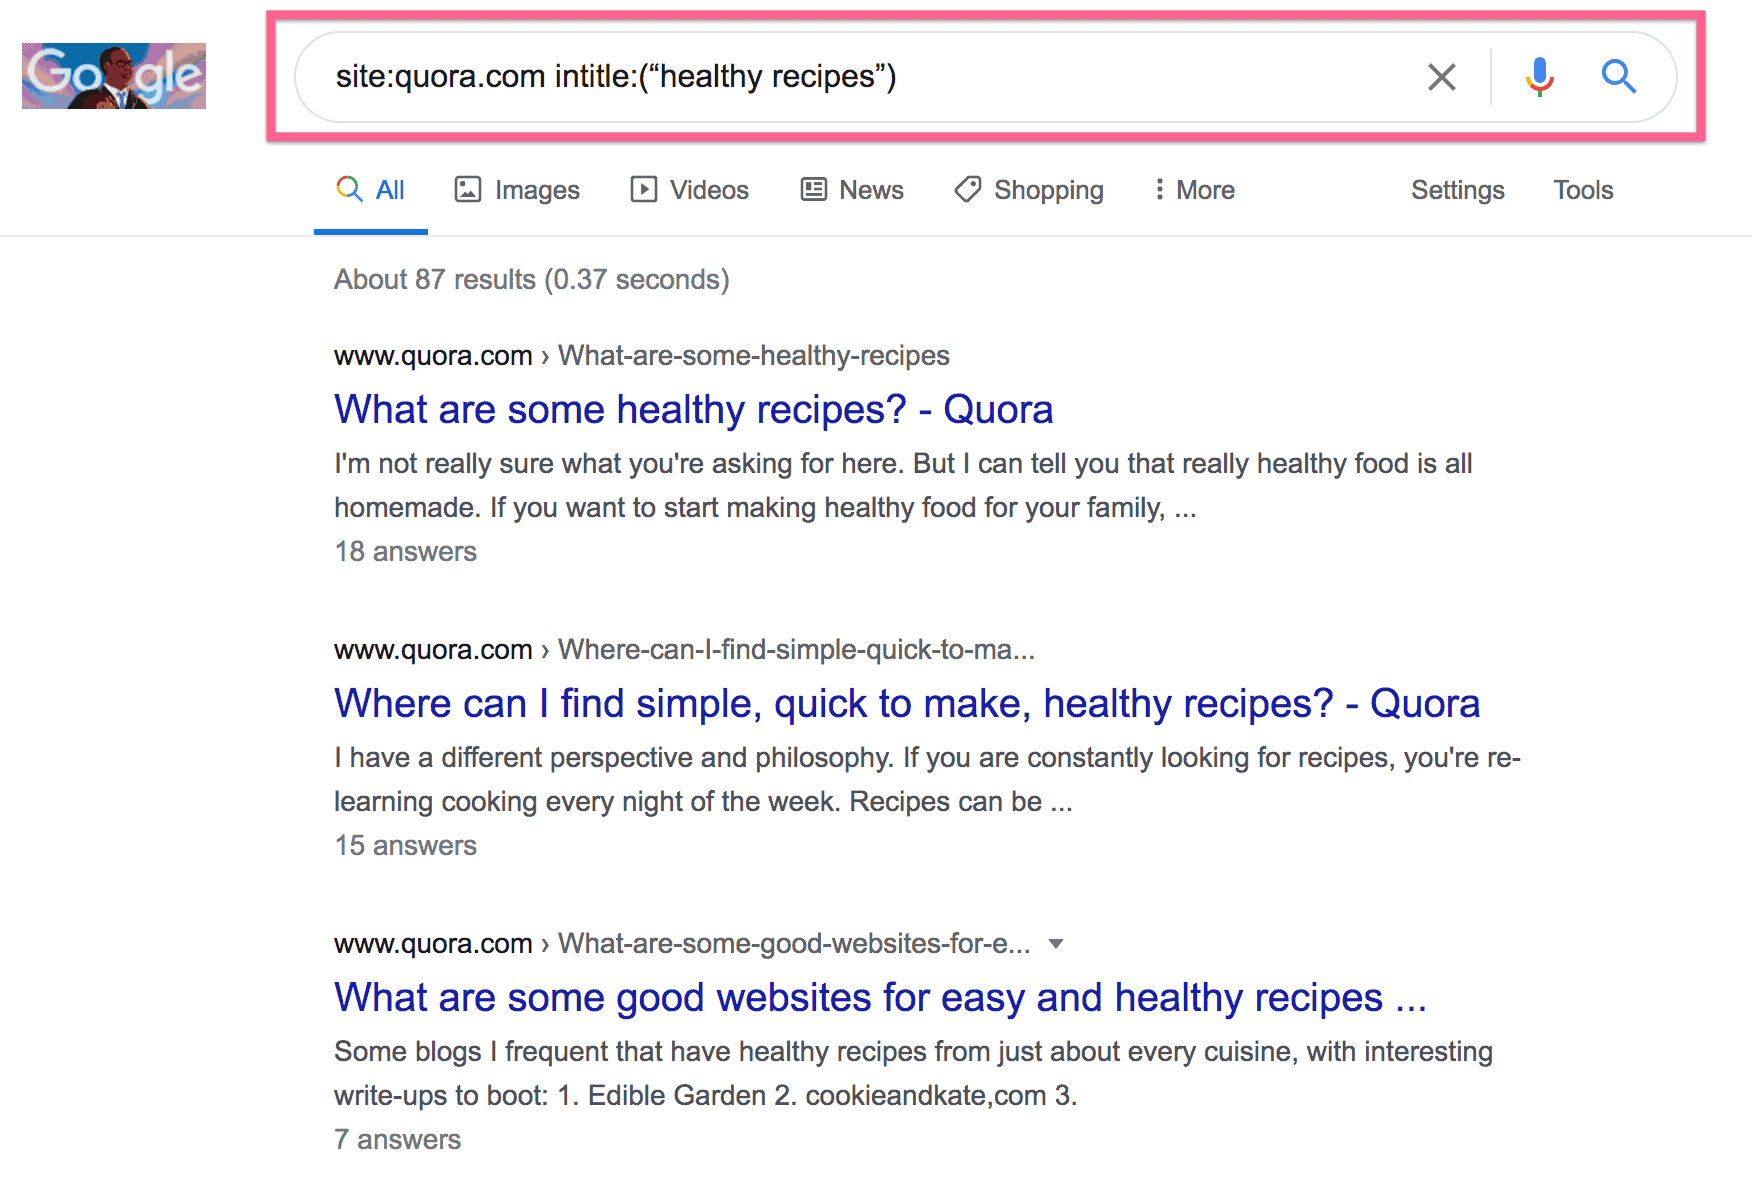 """Google search results for site:quora.com intitle:(""""healthy recipes"""")"""